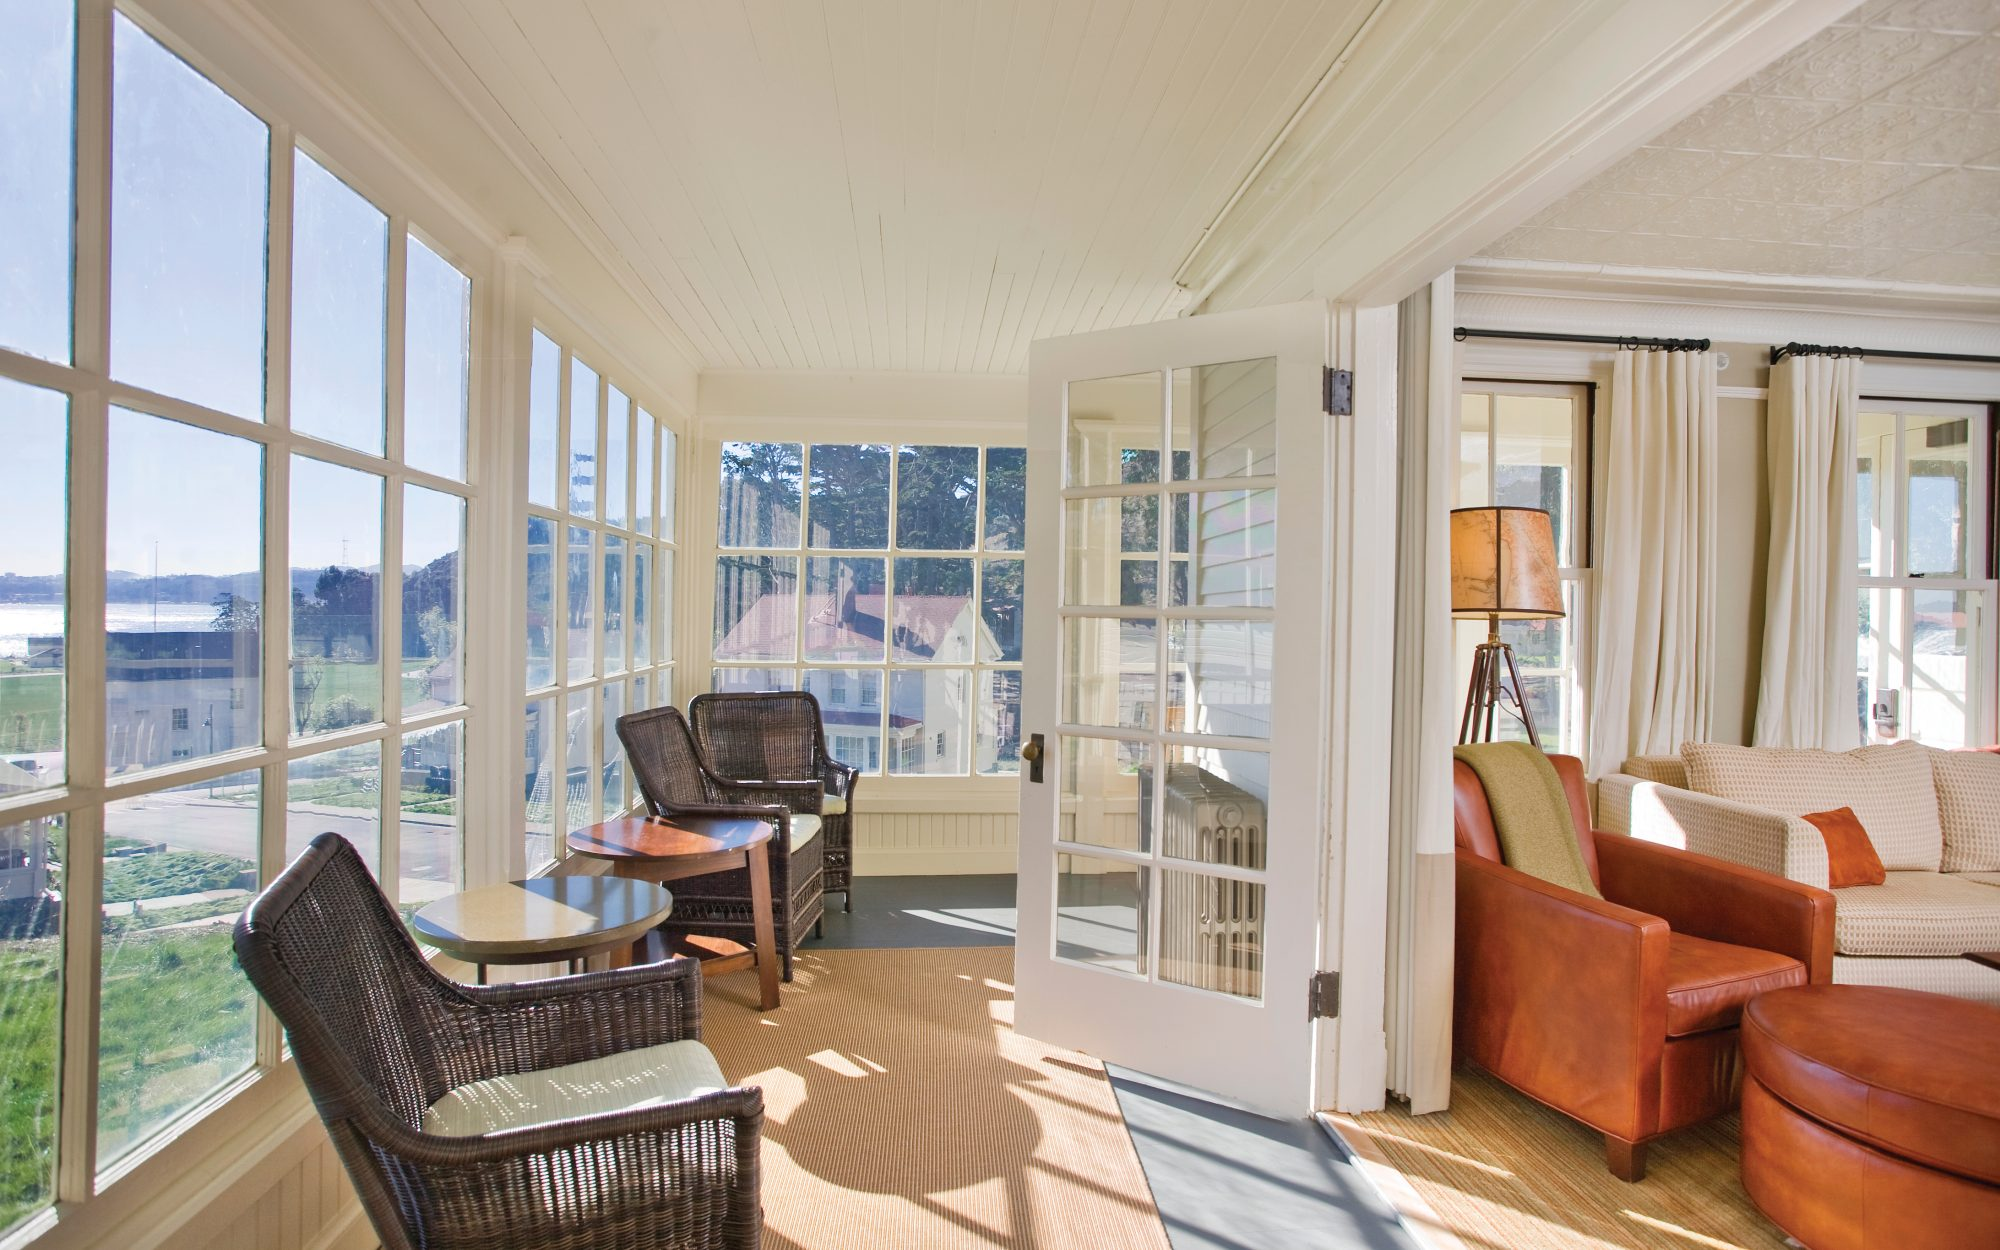 Best Resorts in the Continental U.S.: Cavallo Point Lodge, Sausalito, California